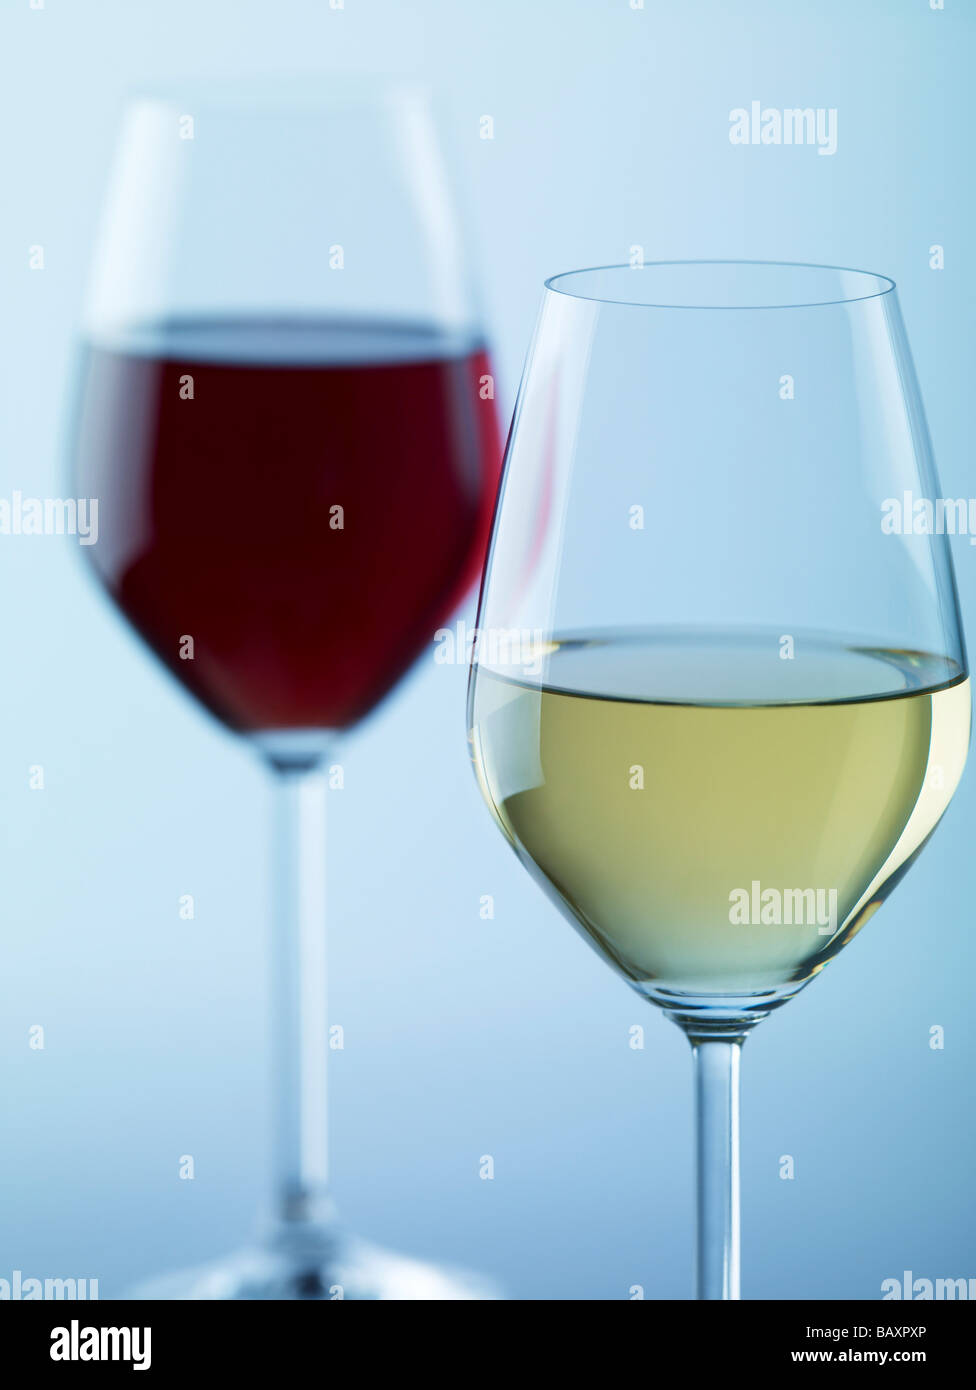 Glasses of wine - Stock Image